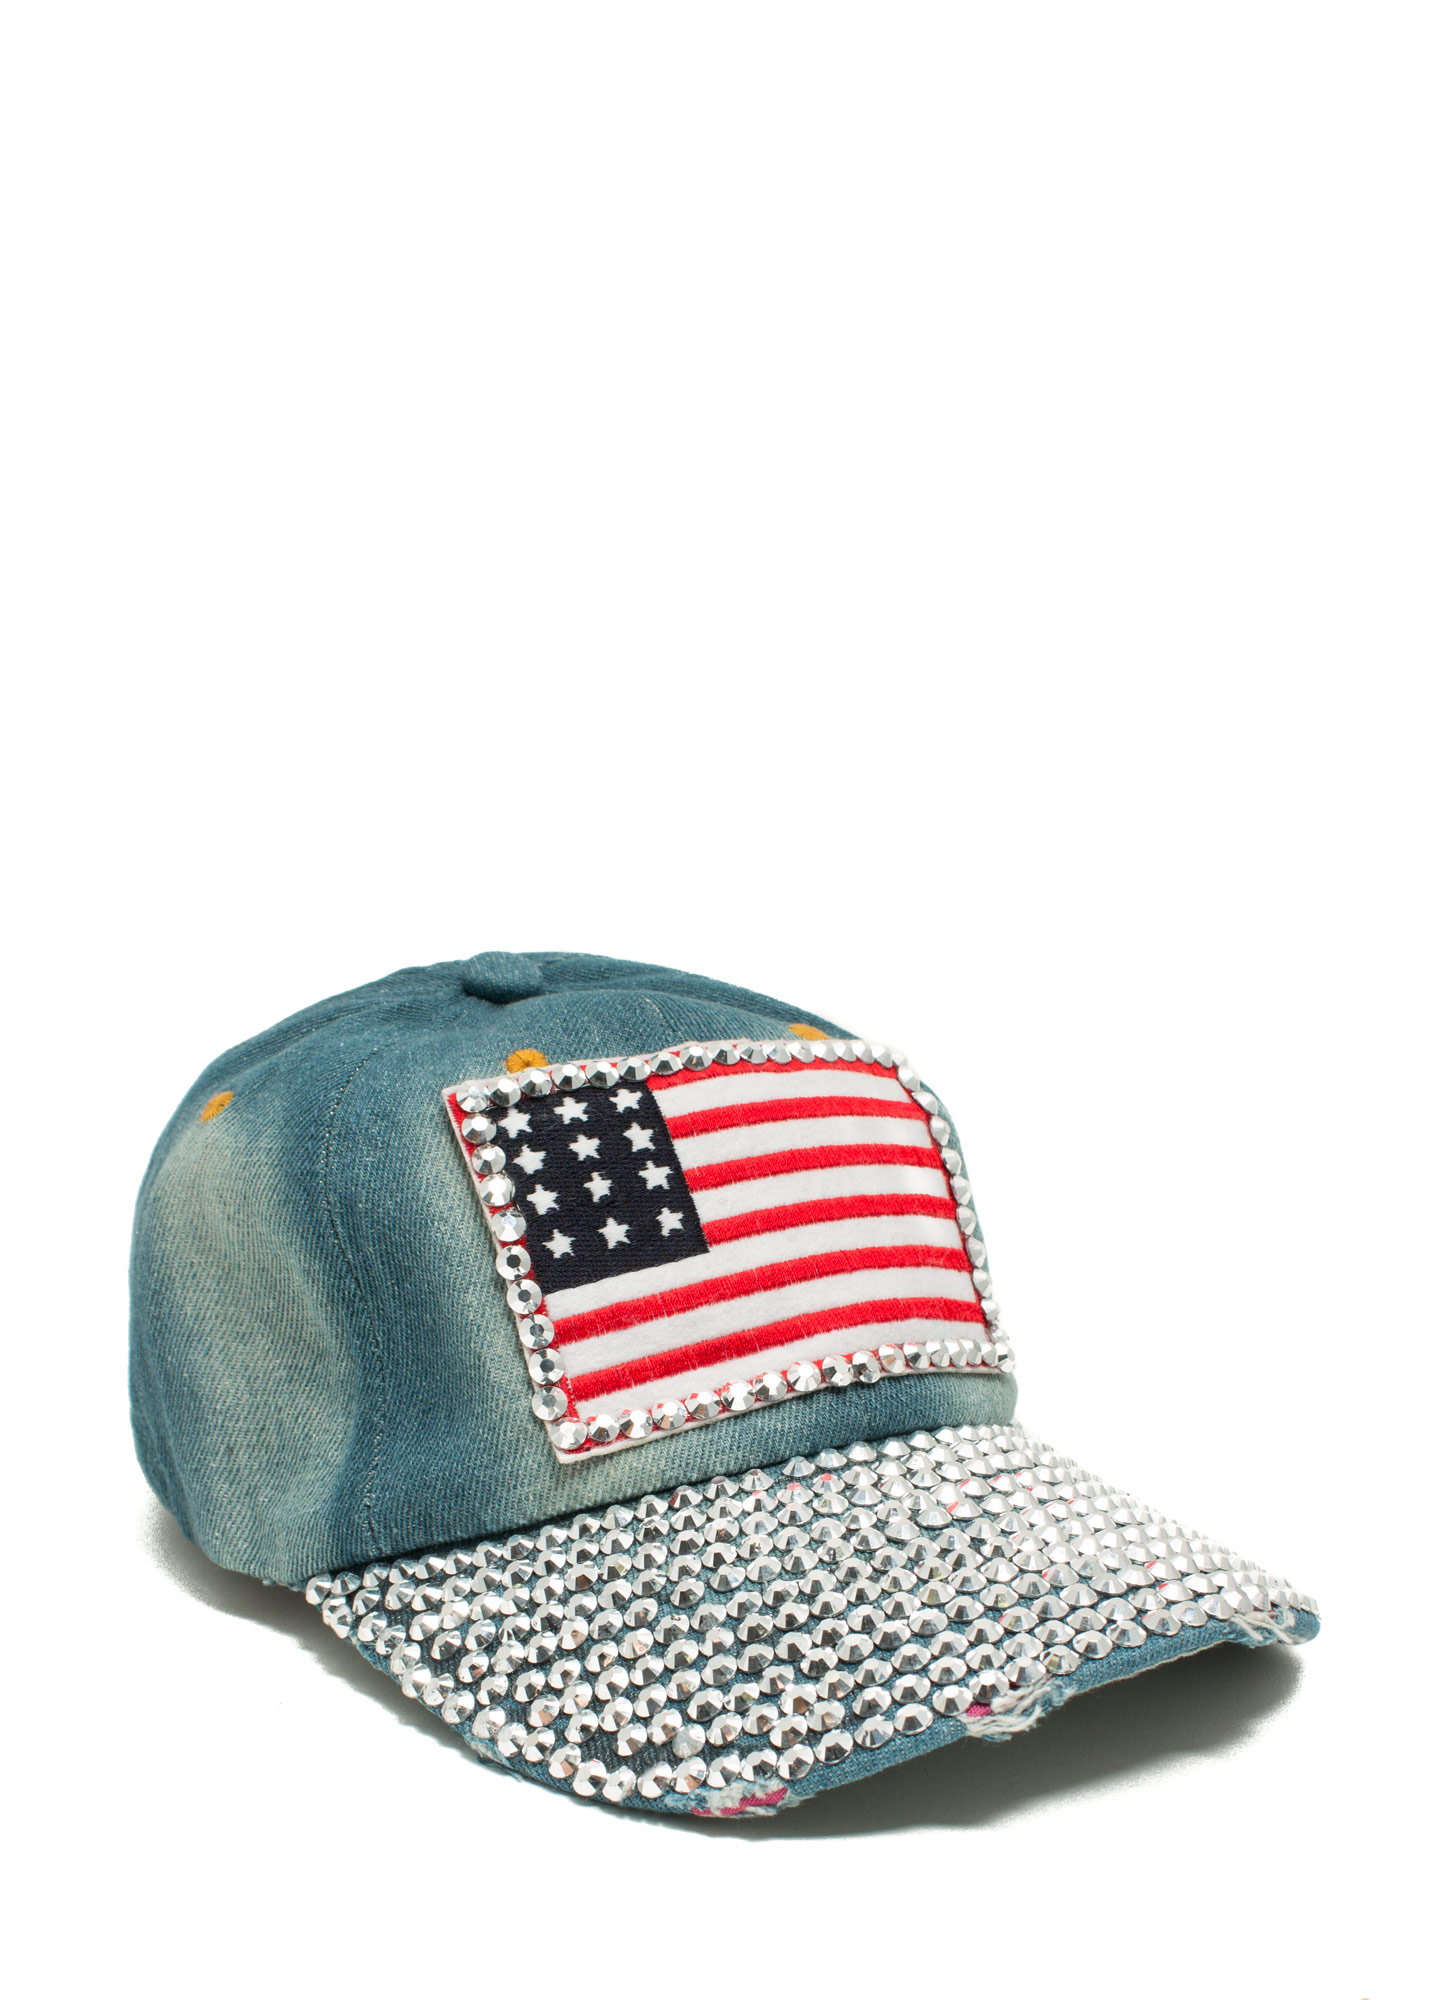 Jeweled American Flag Patch Denim Cap BLUEMULTI